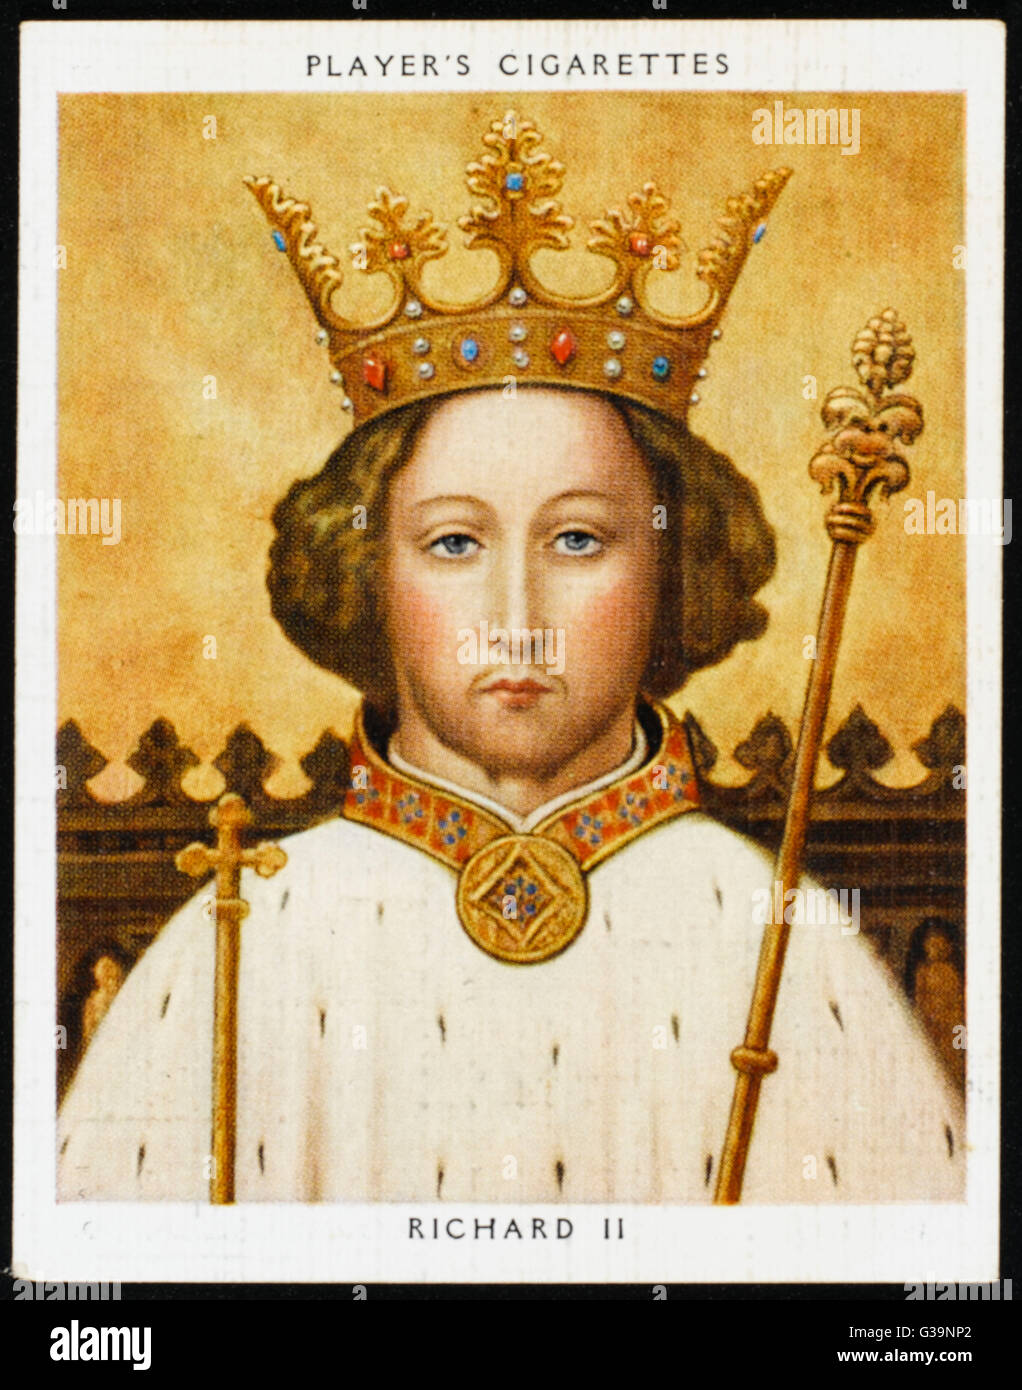 RICHARD II, KING OF ENGLAND (1367 - 1400) Reigned 1377 - 1399